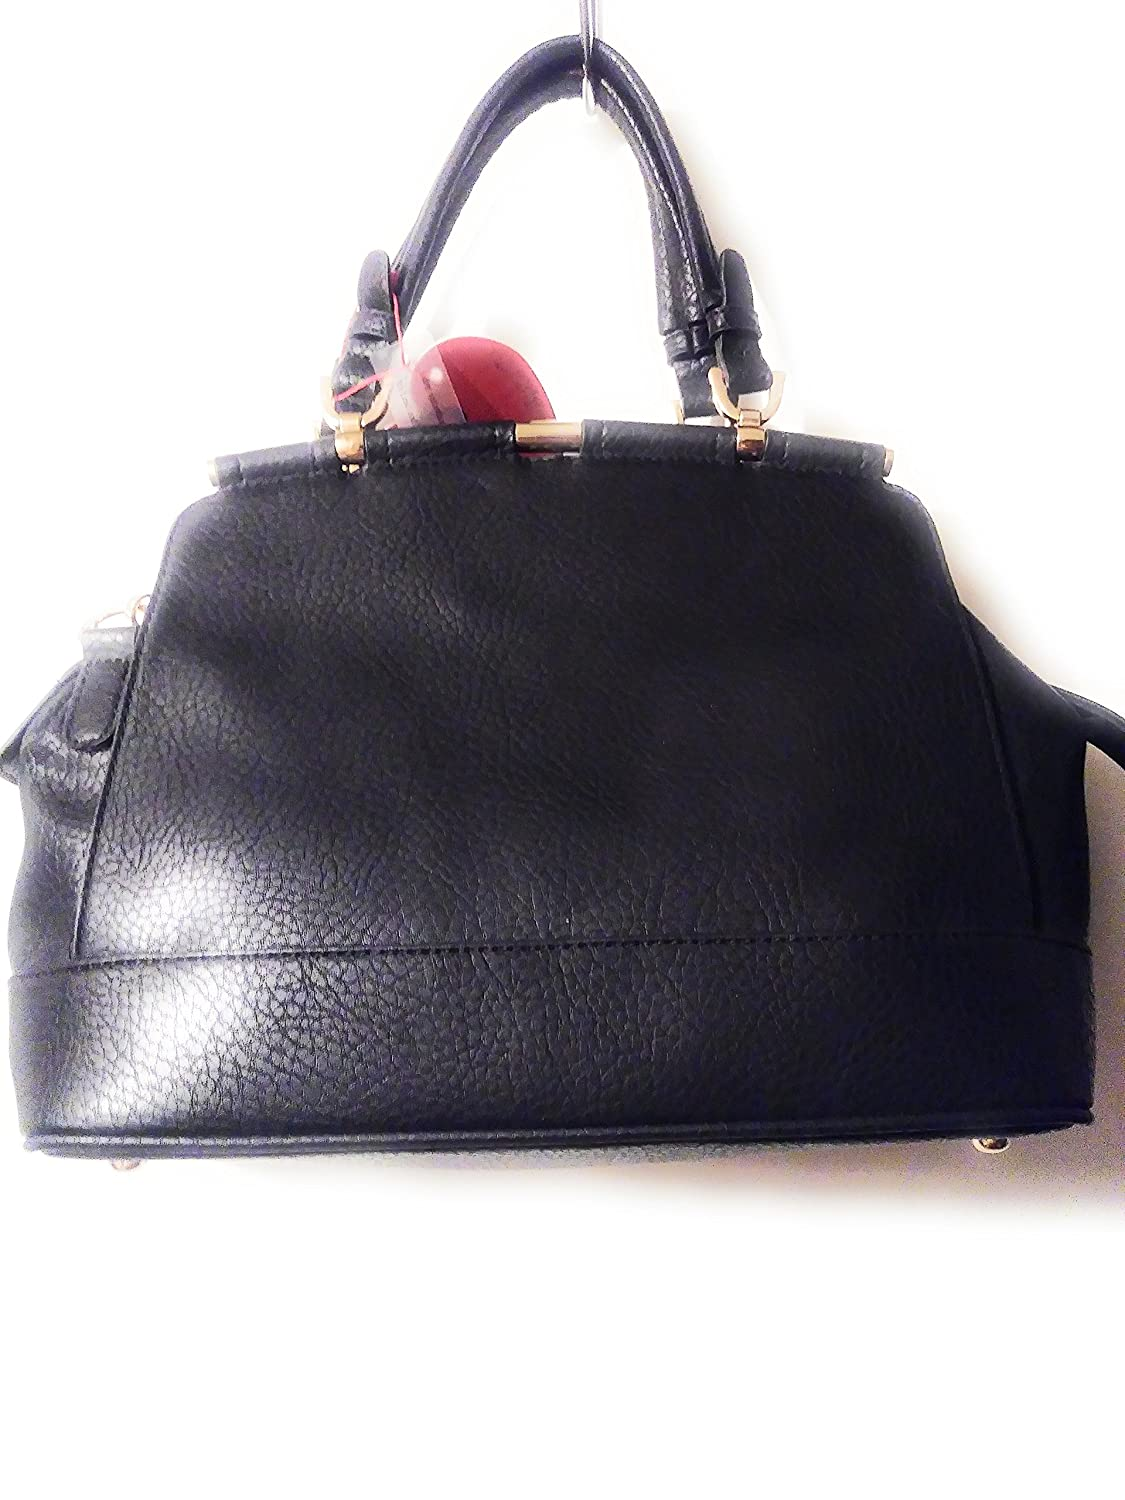 481443af5ca1 Womens Midnight Black Shoulder Hand Bag Purse  Handbags  Amazon.com